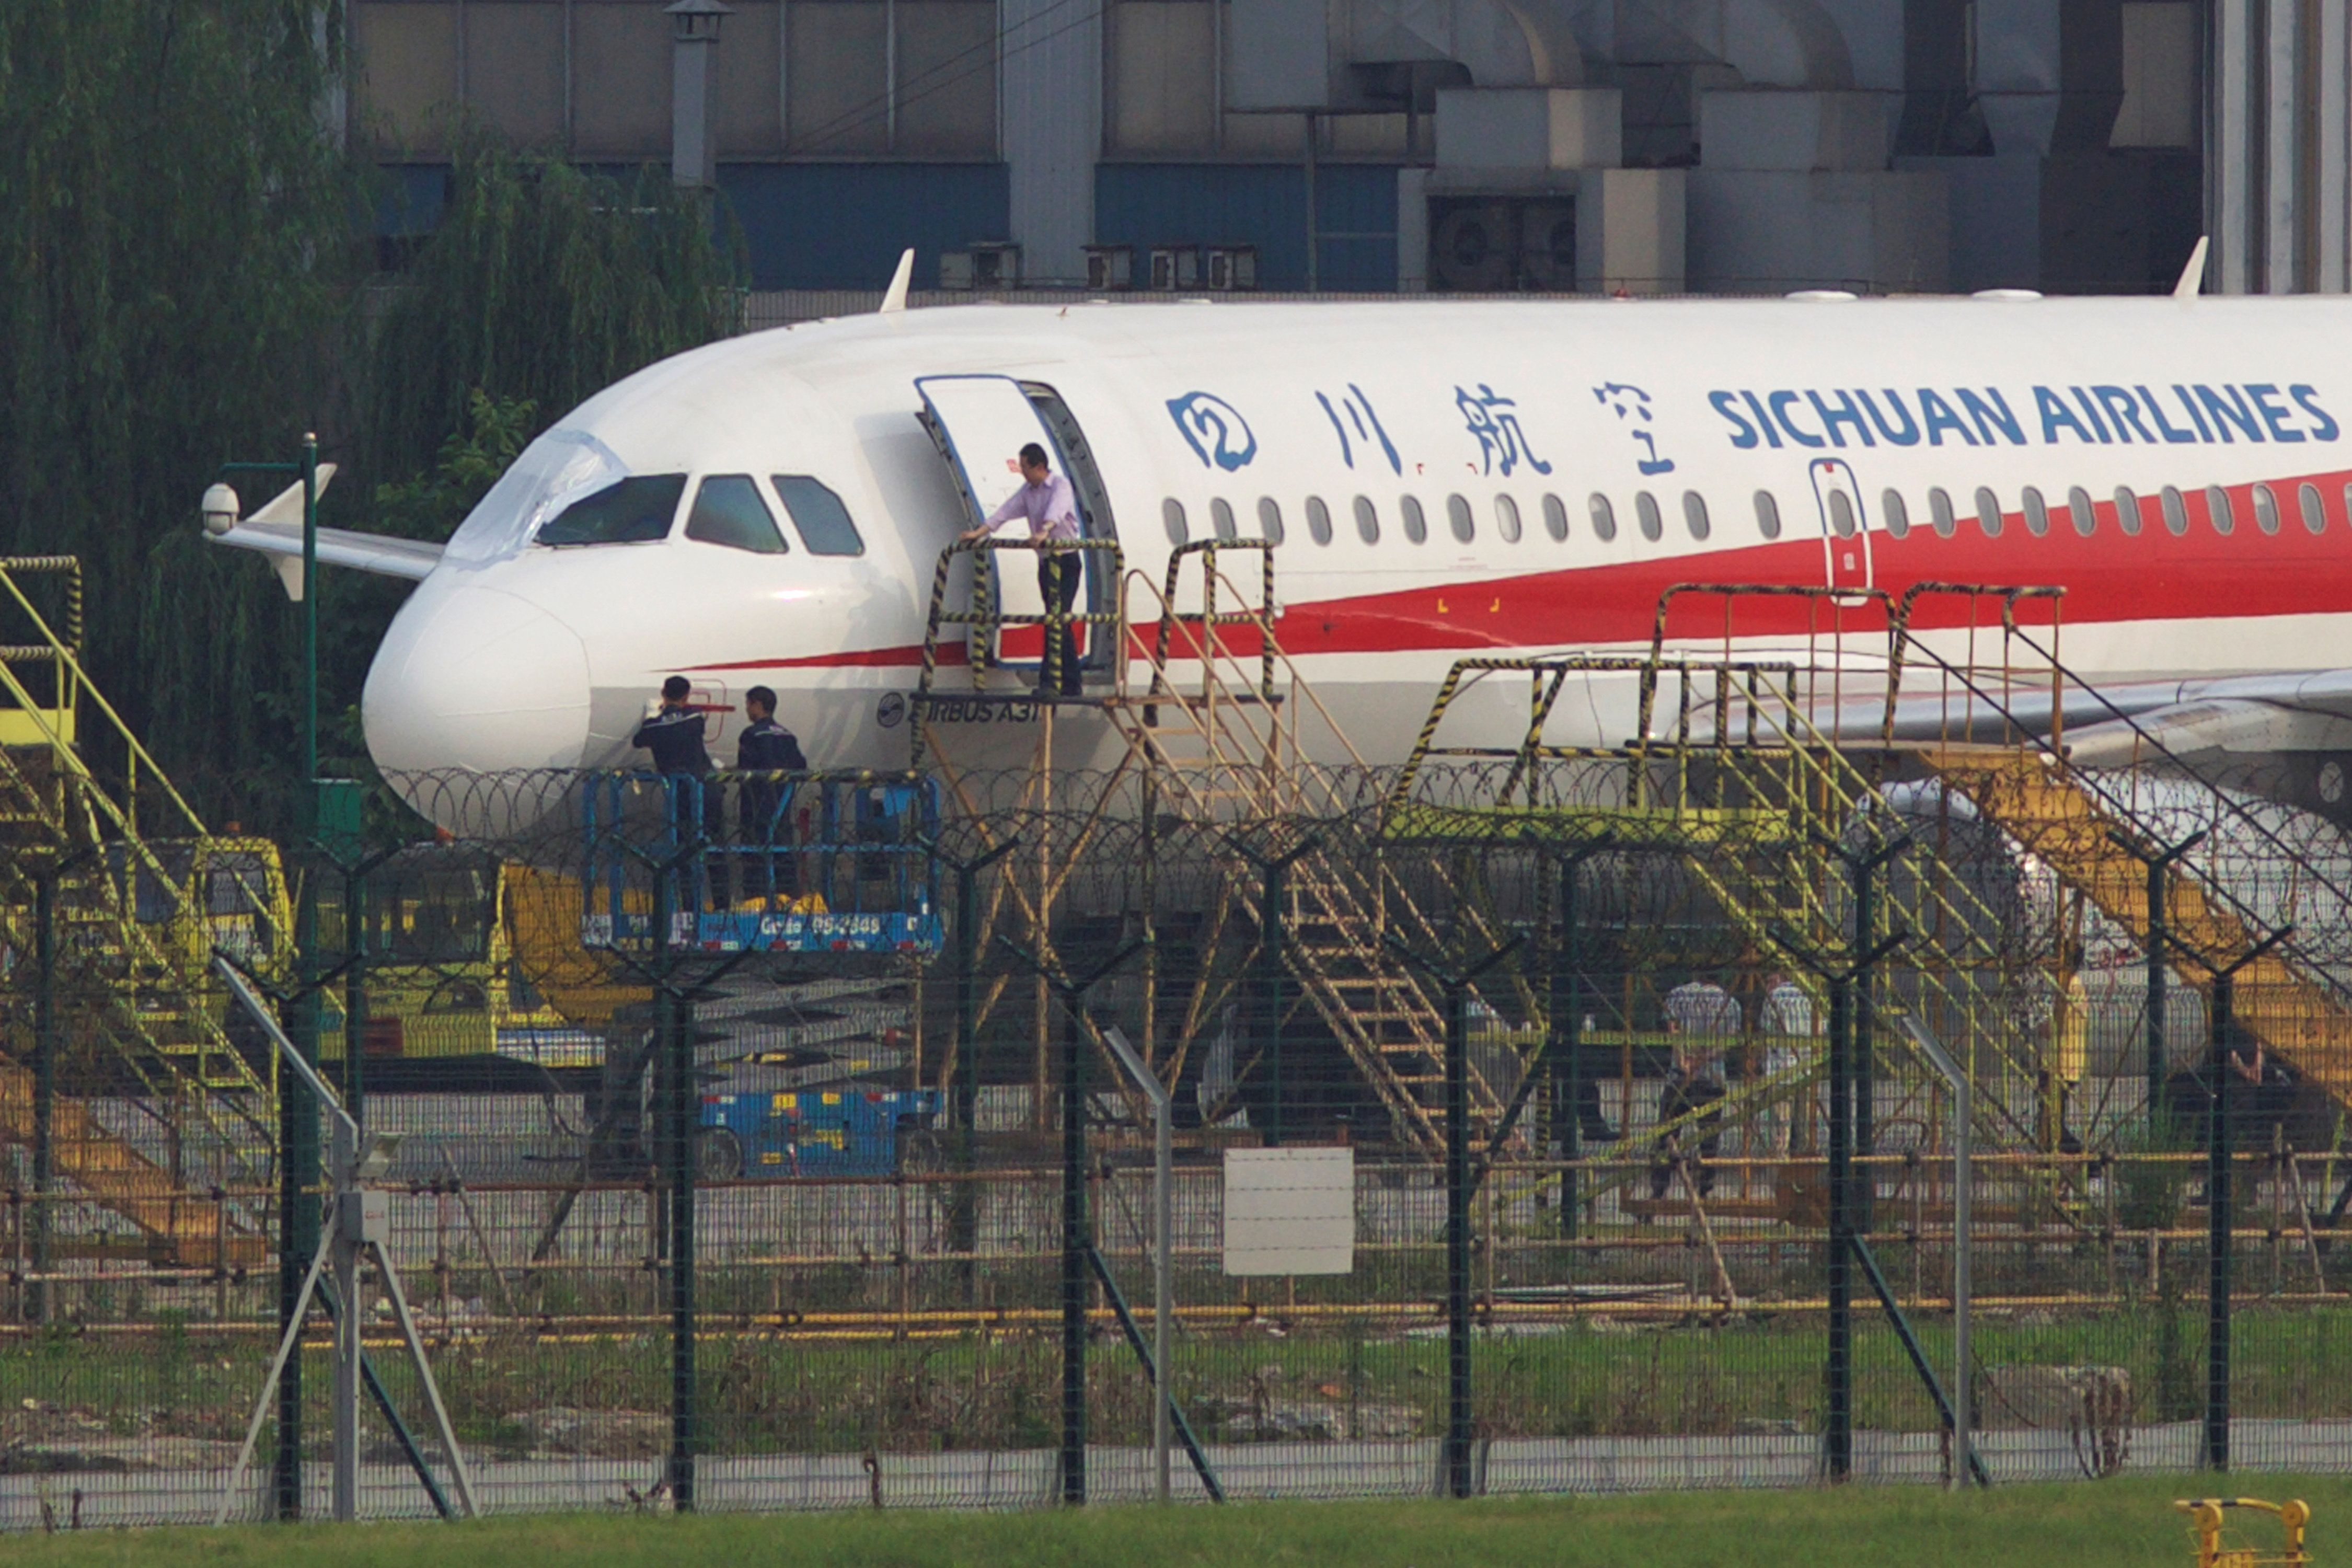 Workers inspect a Sichuan Airlines aircraft that made an emergency landing after a windshield on the cockpit broke off, at an